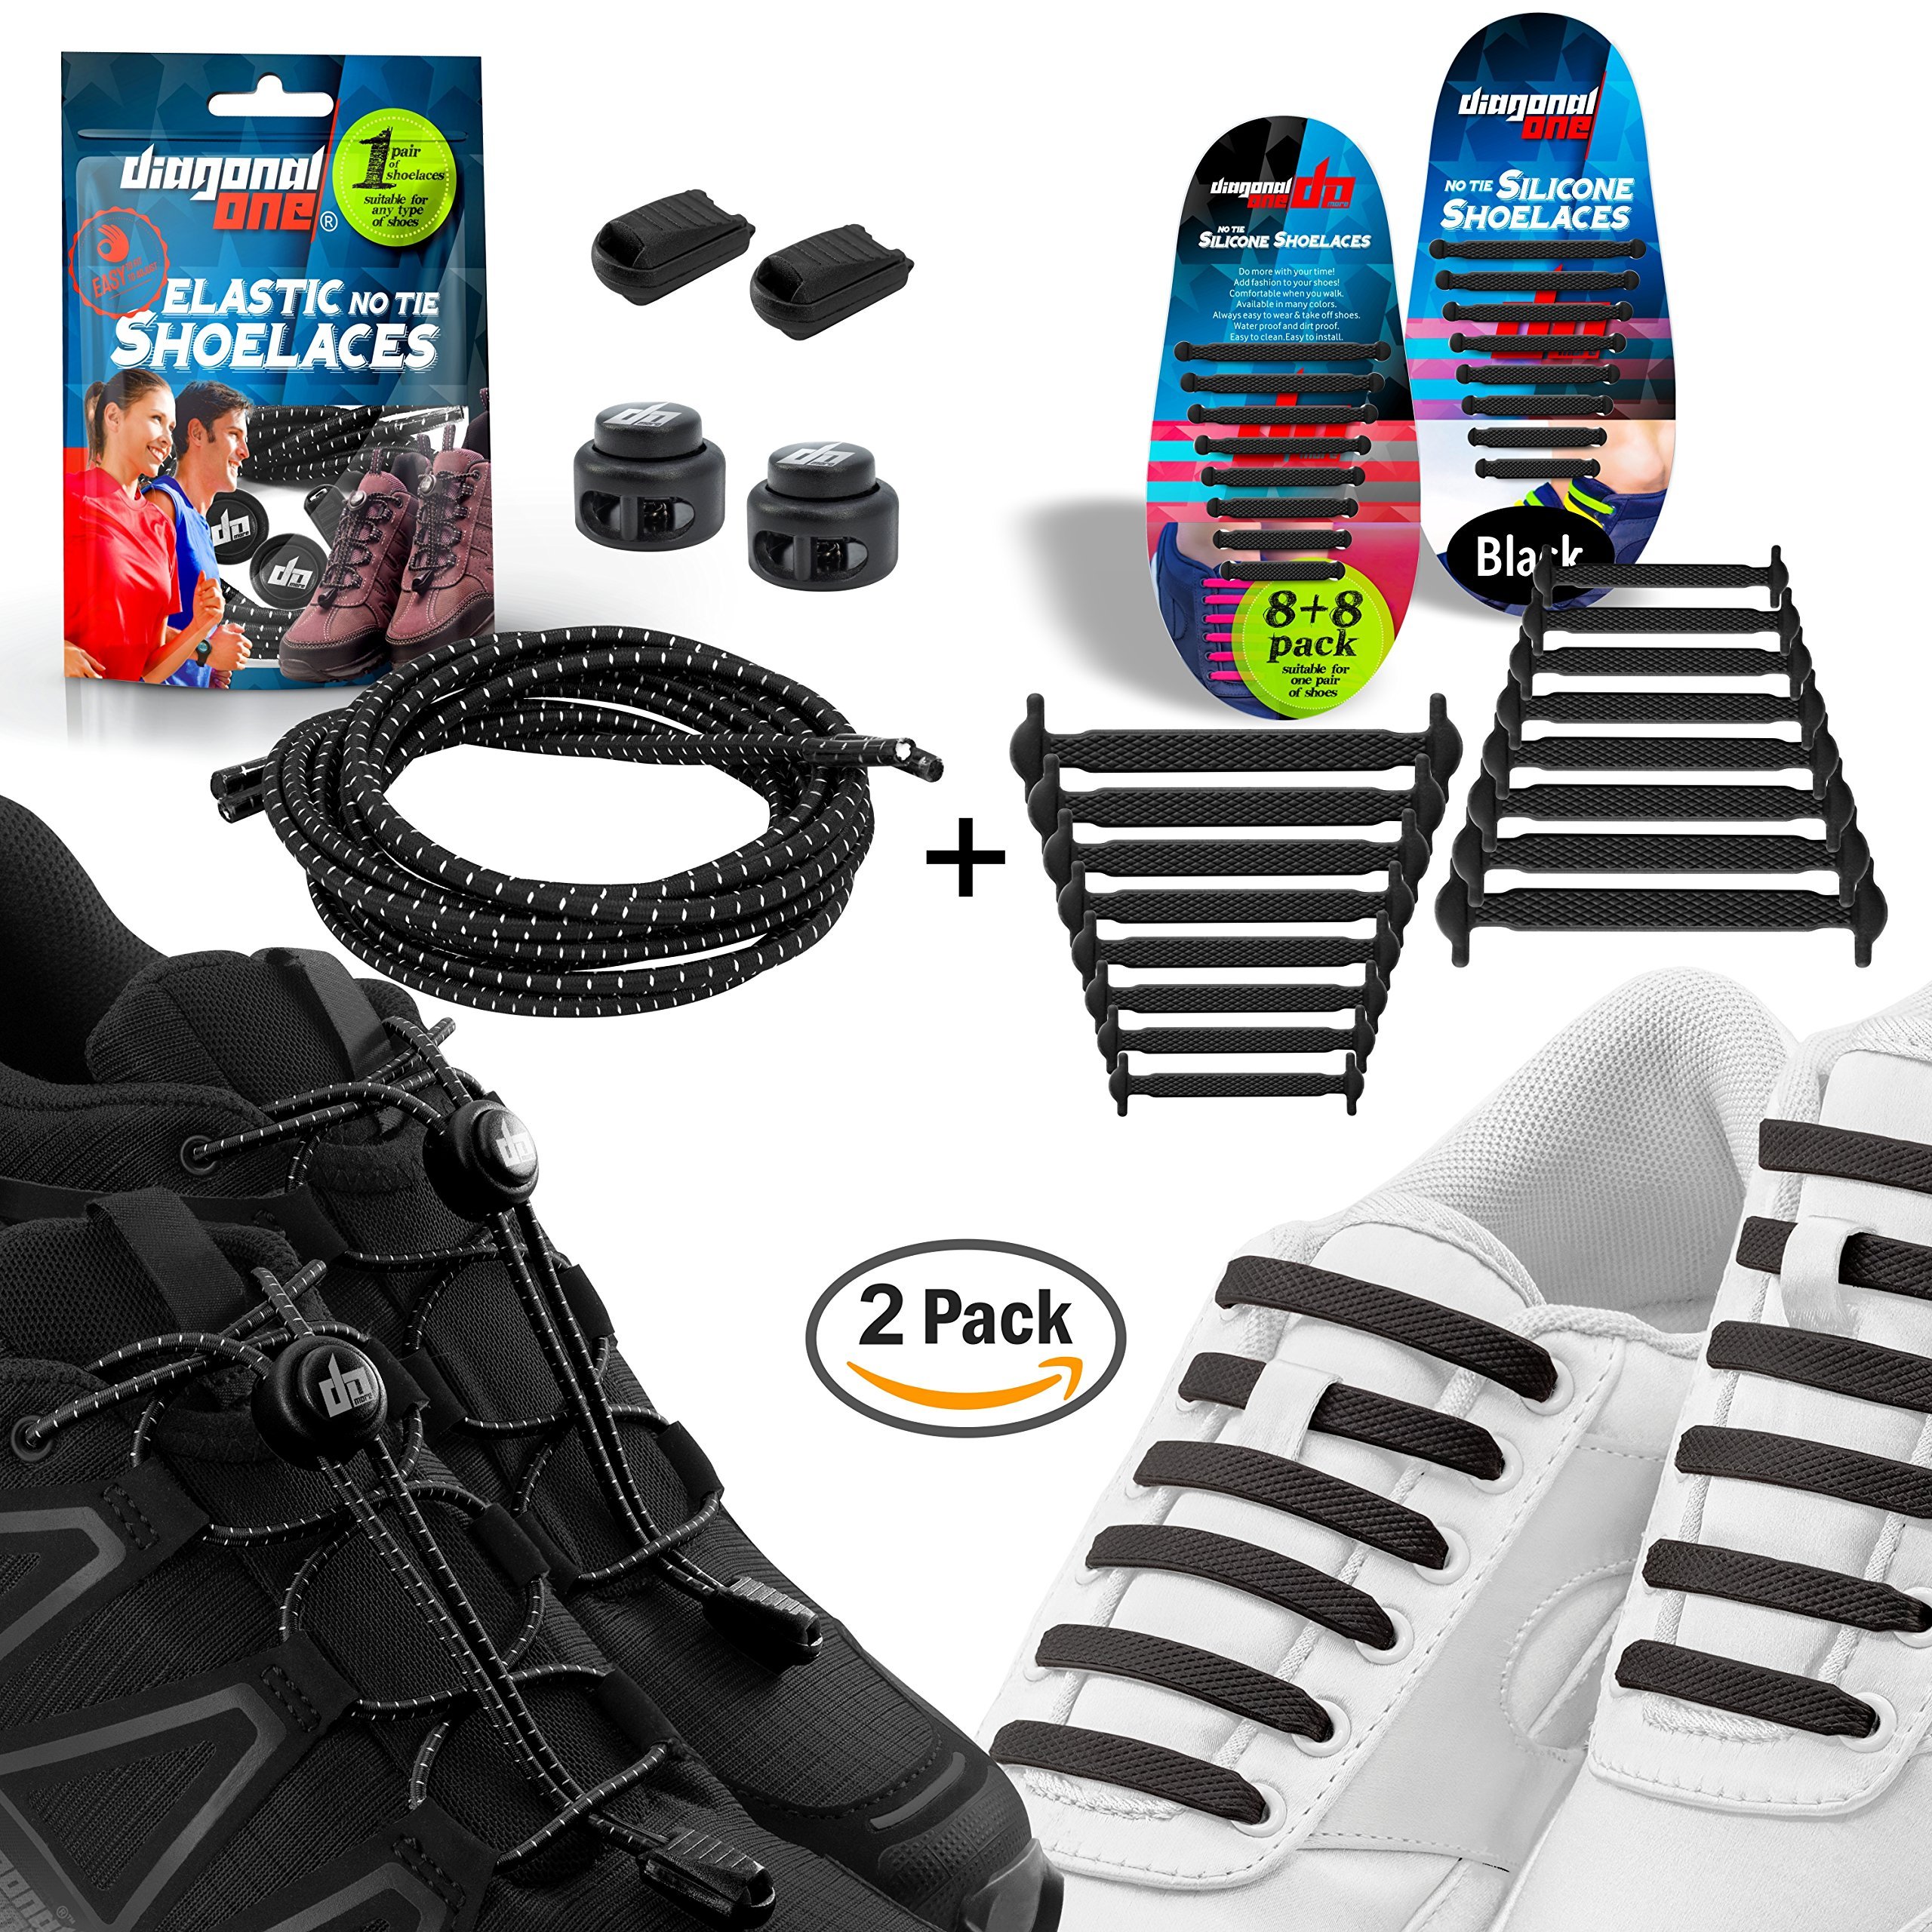 Diagonal One No Tie Shoelaces – 2 Pack. Slip On Tieless Elastic + Silicone Shoe Laces for Kids, Adults & Seniors. Best for Sneakers and Casual Footwear (Black Elastic + Black Silicone)